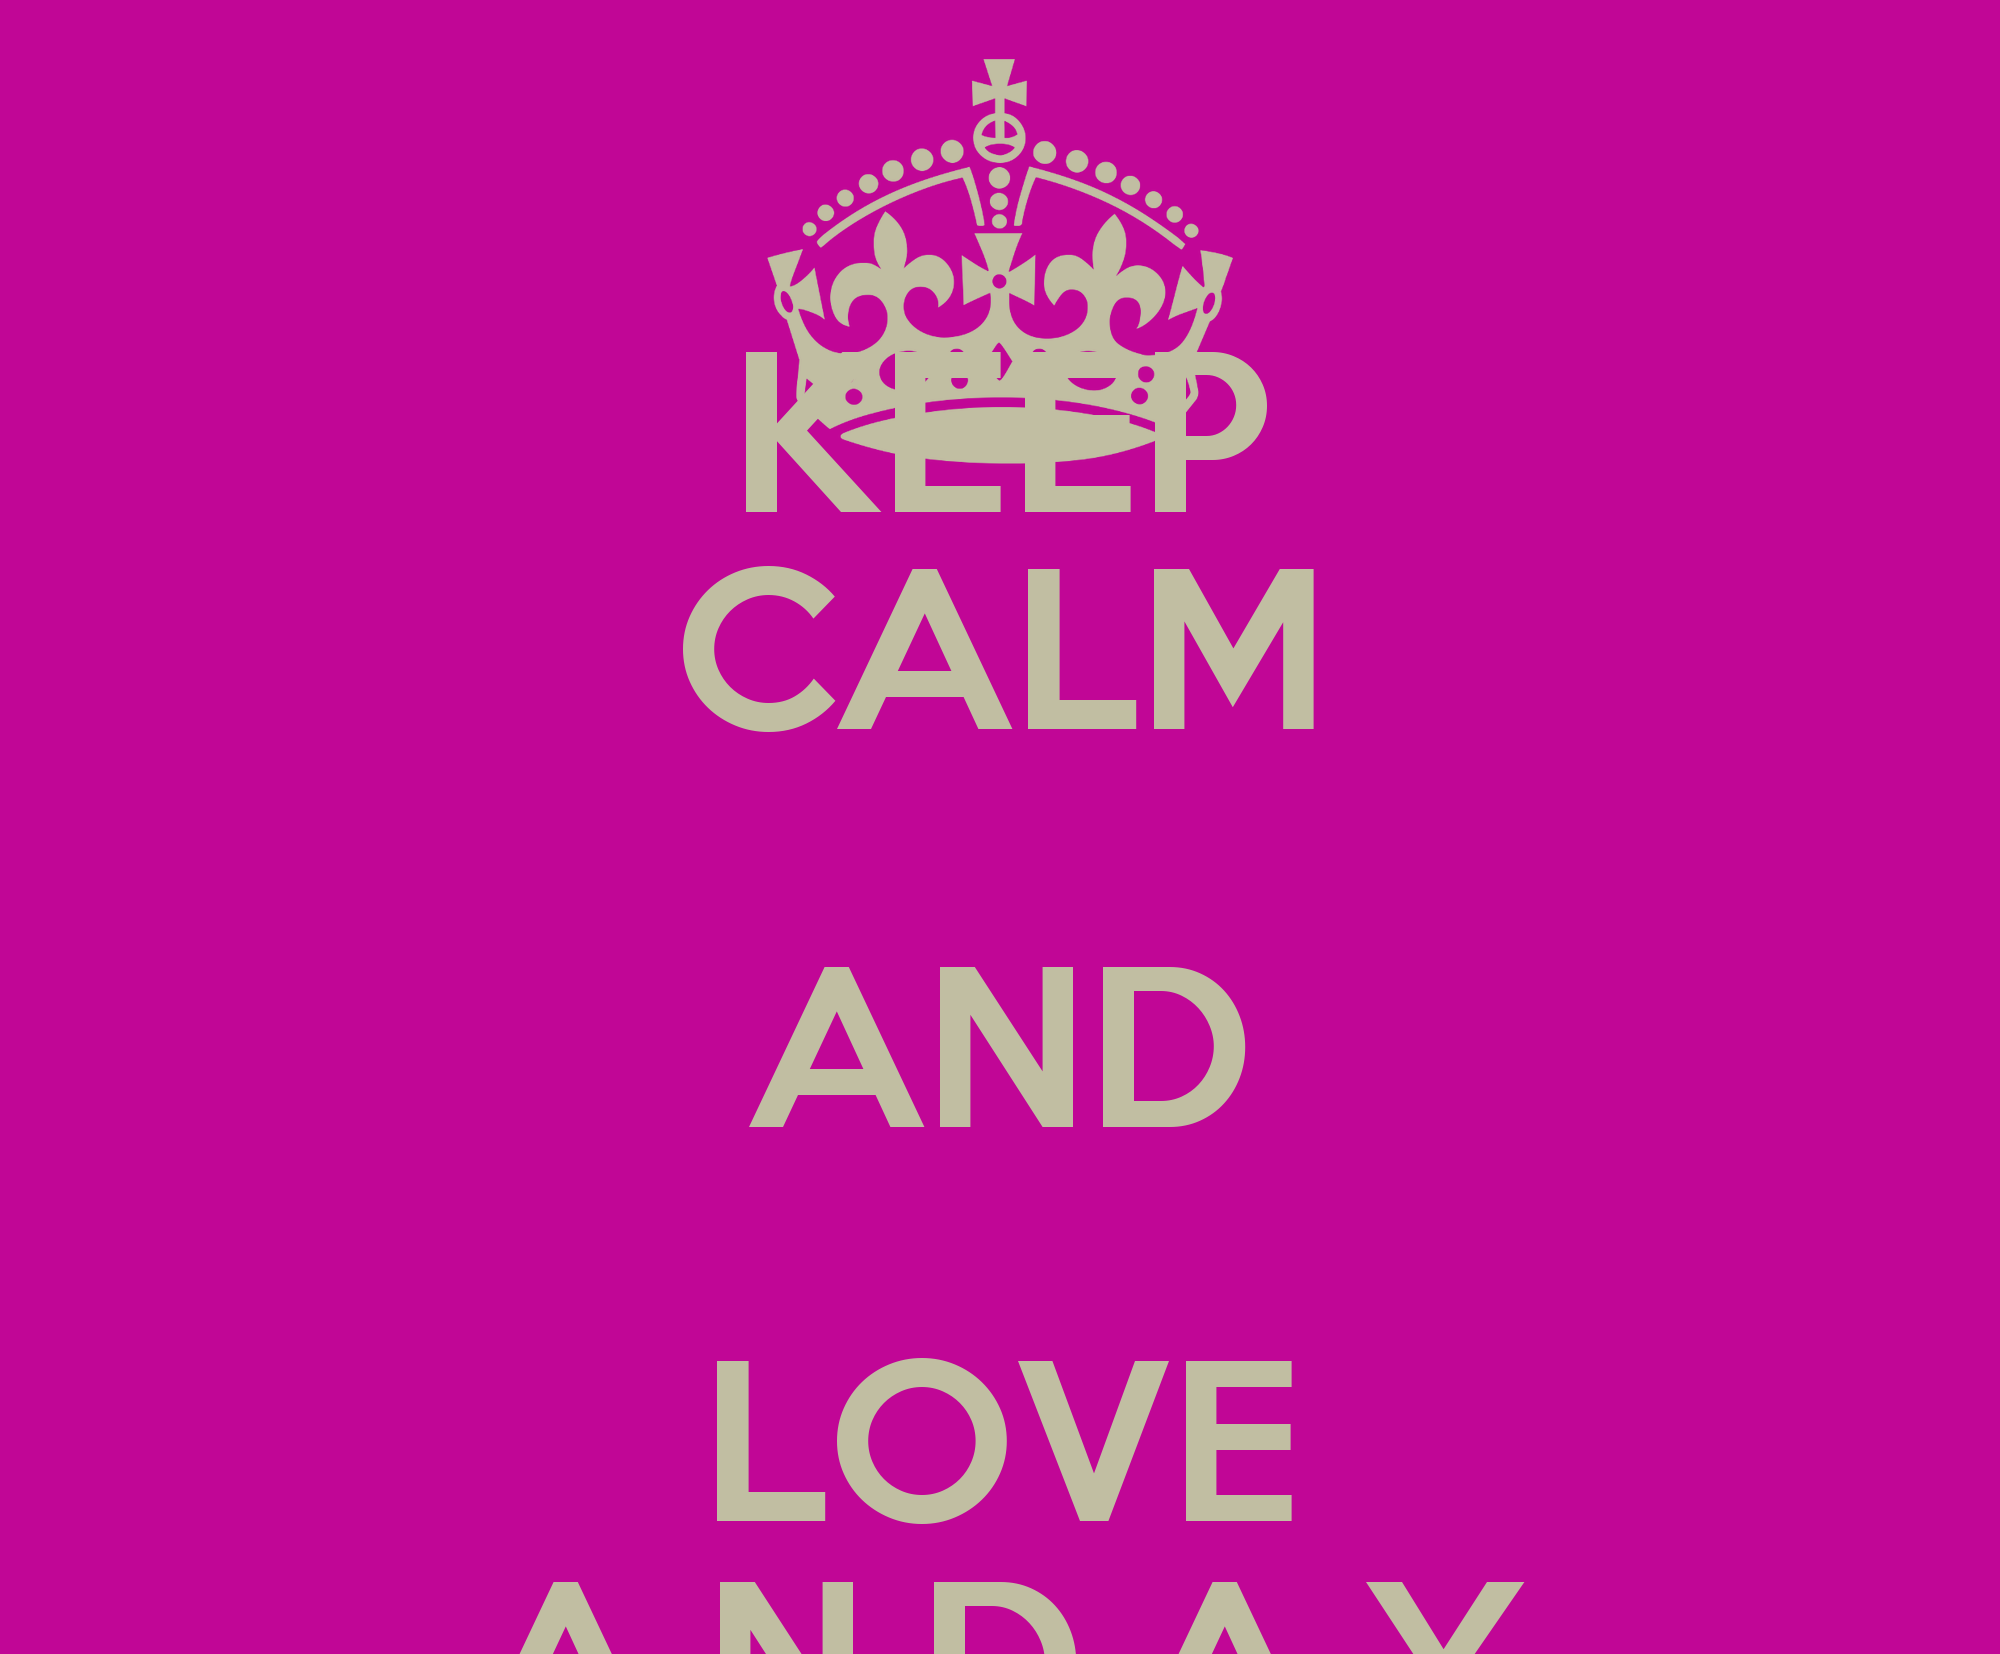 KEEP CALM AND LOVE A.N.D.A.Y Poster